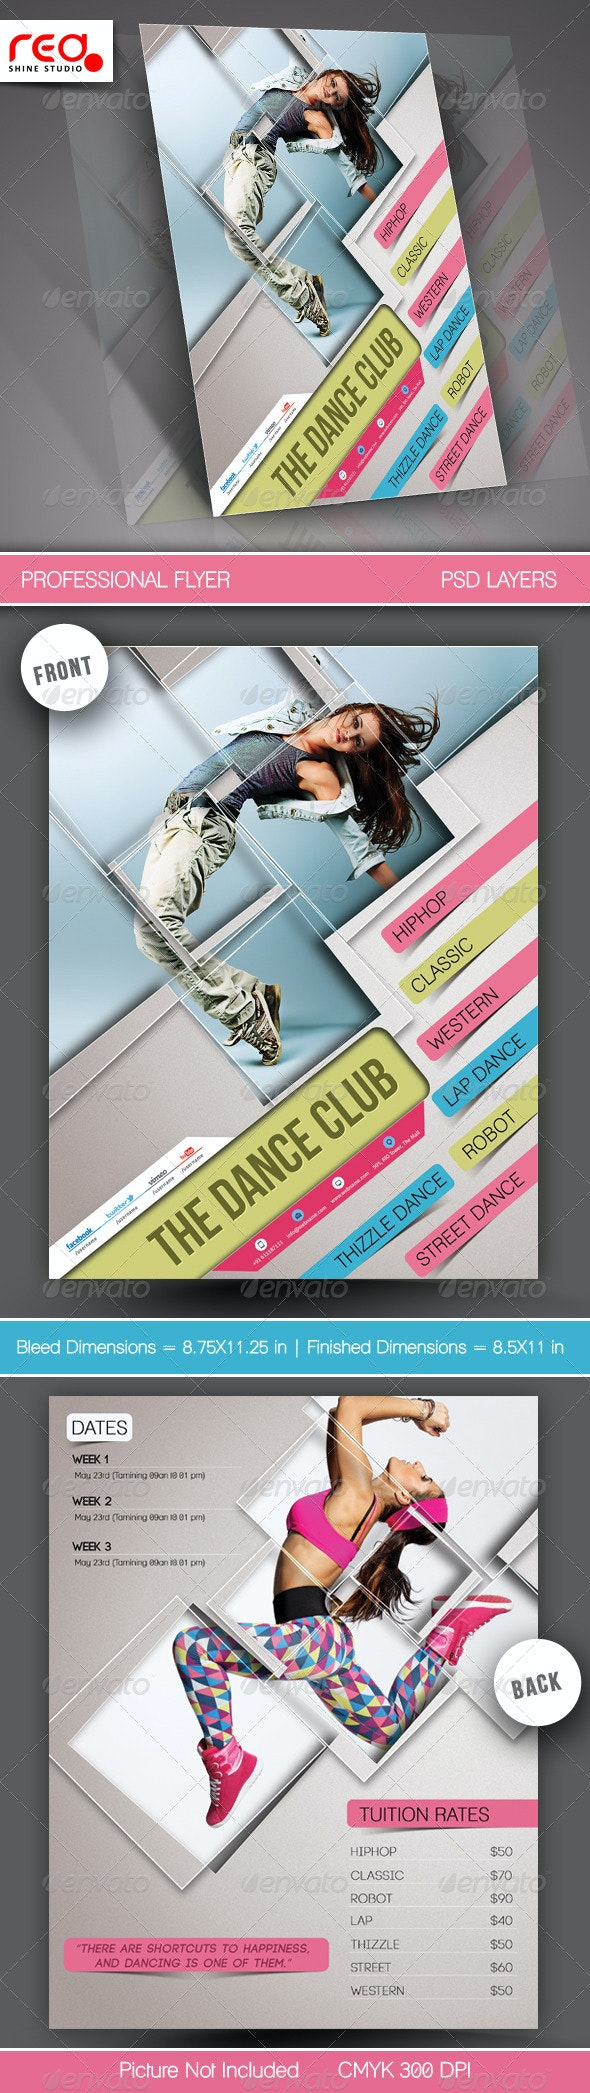 Dance Academy Flyer & Poster Template - Commerce Flyers